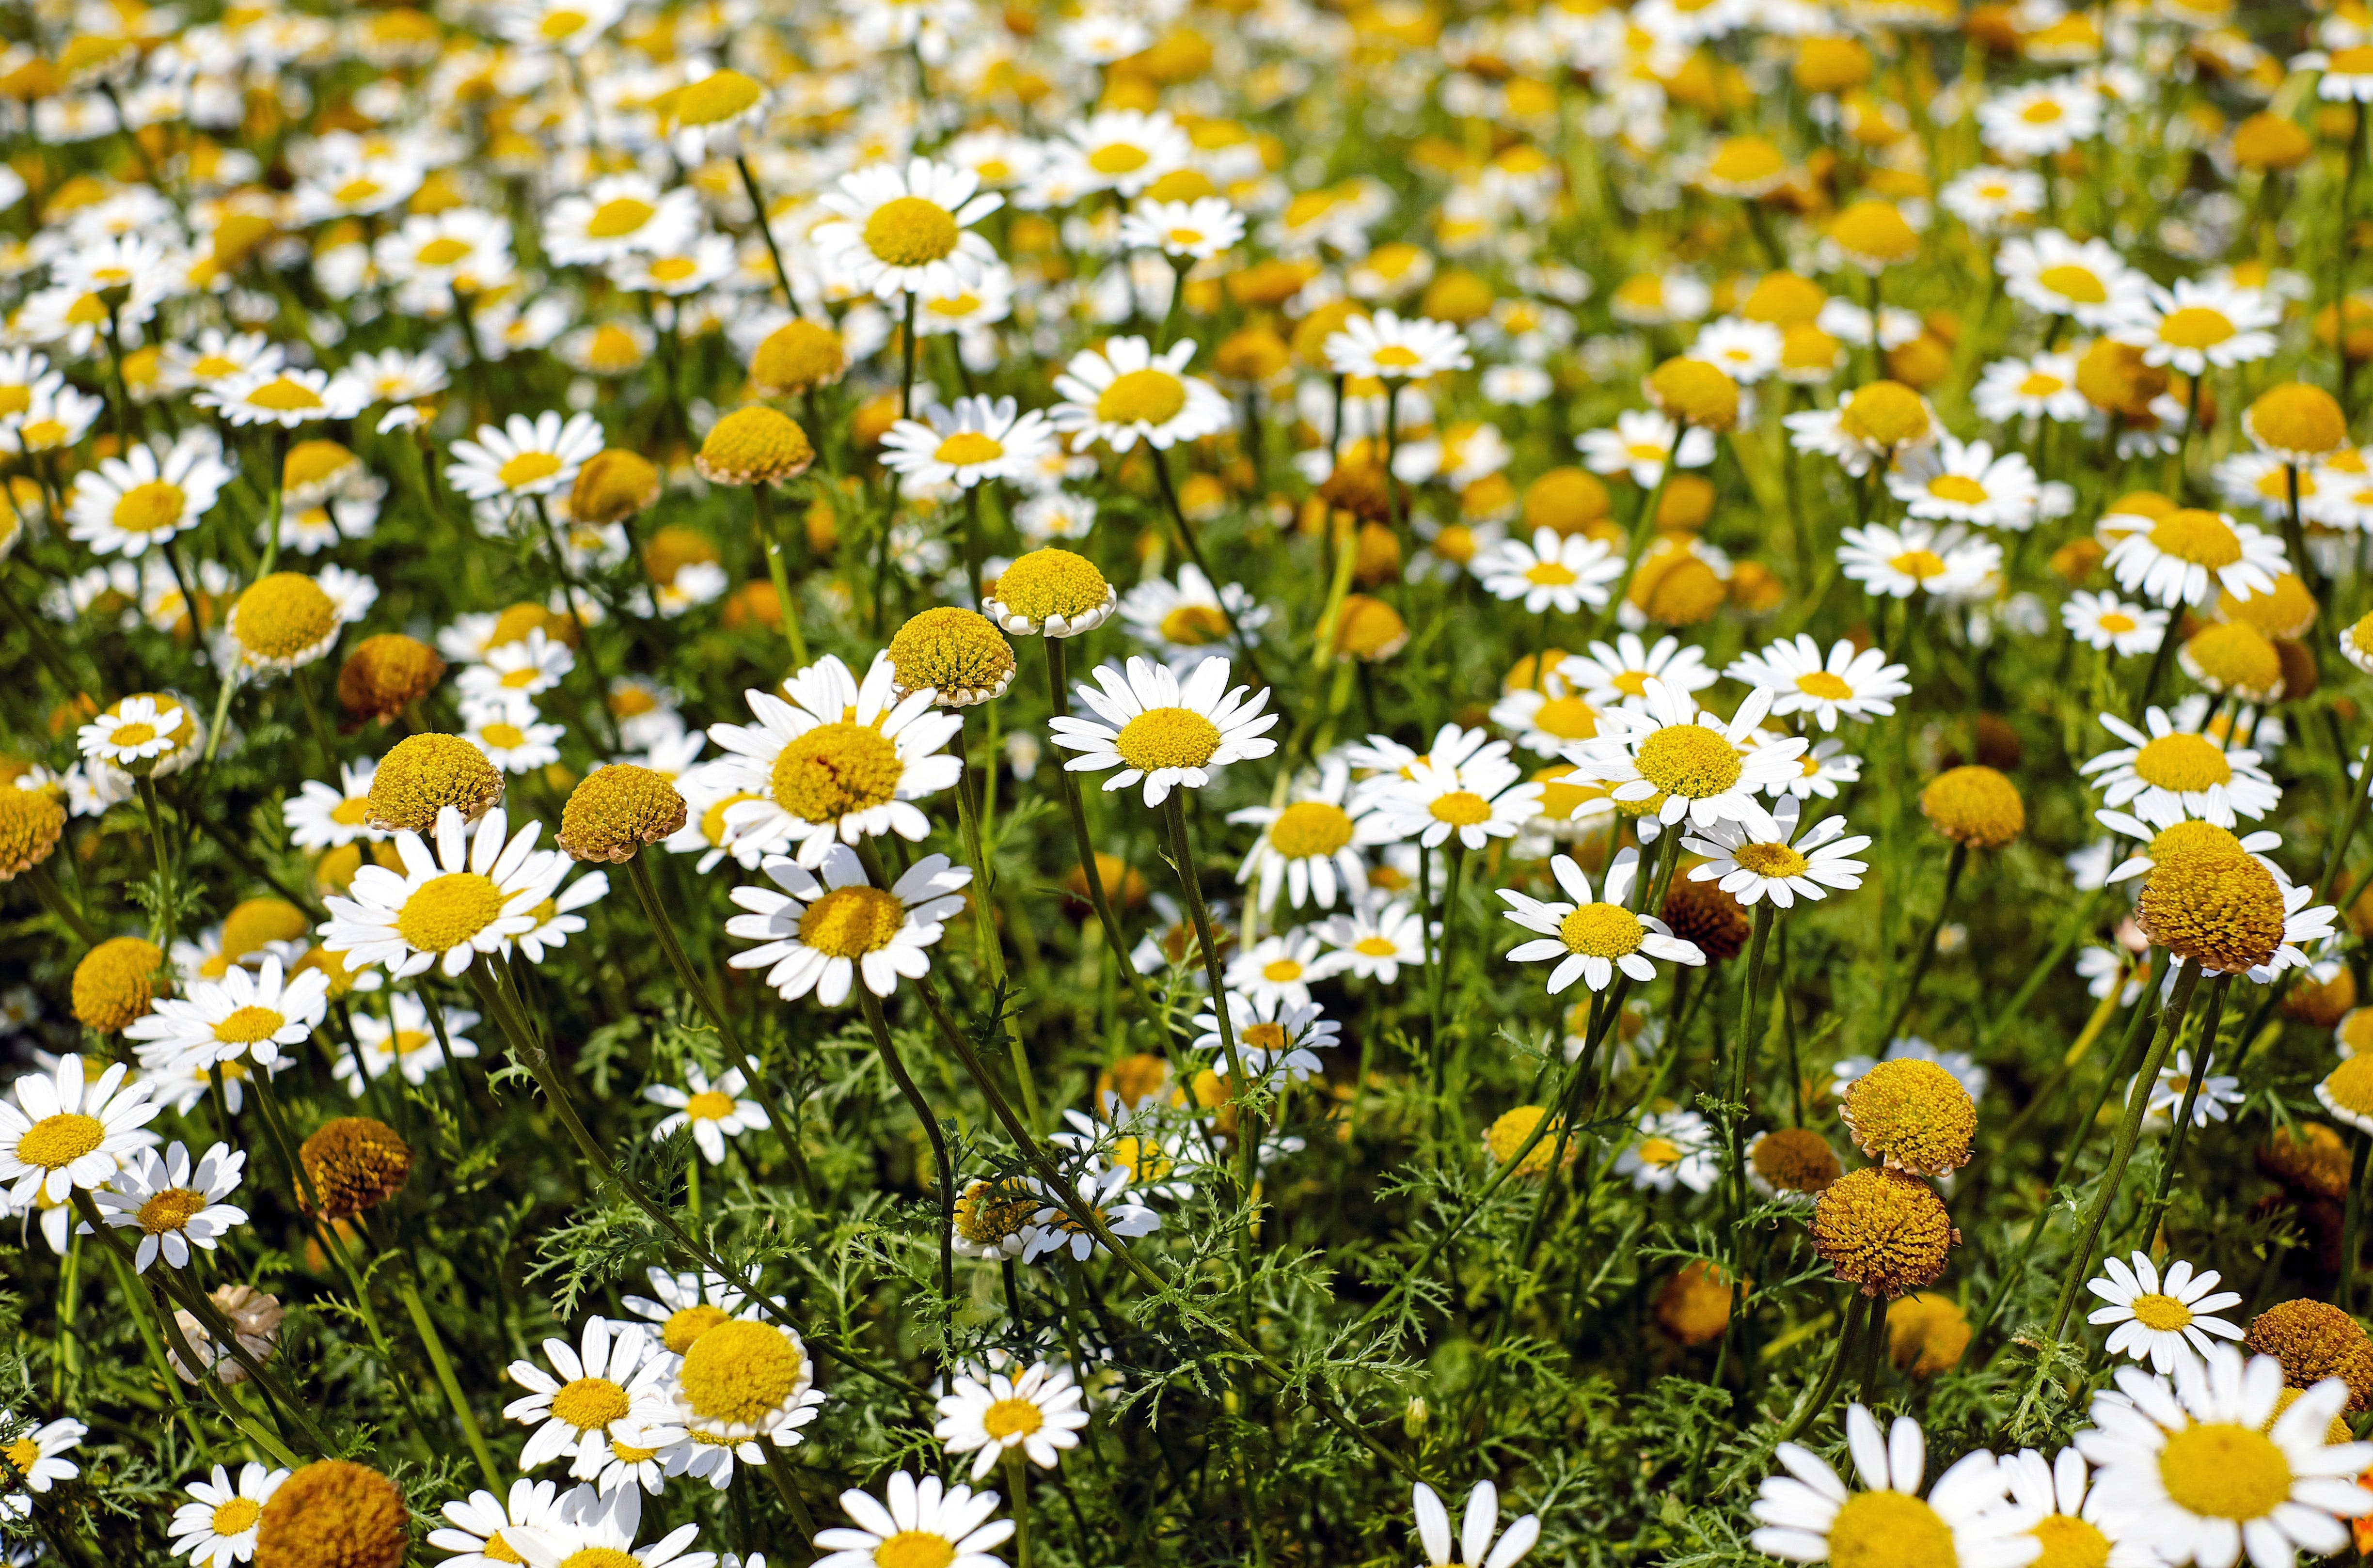 Shallow Focus Photography of Yellow and White Flowers during Daytime